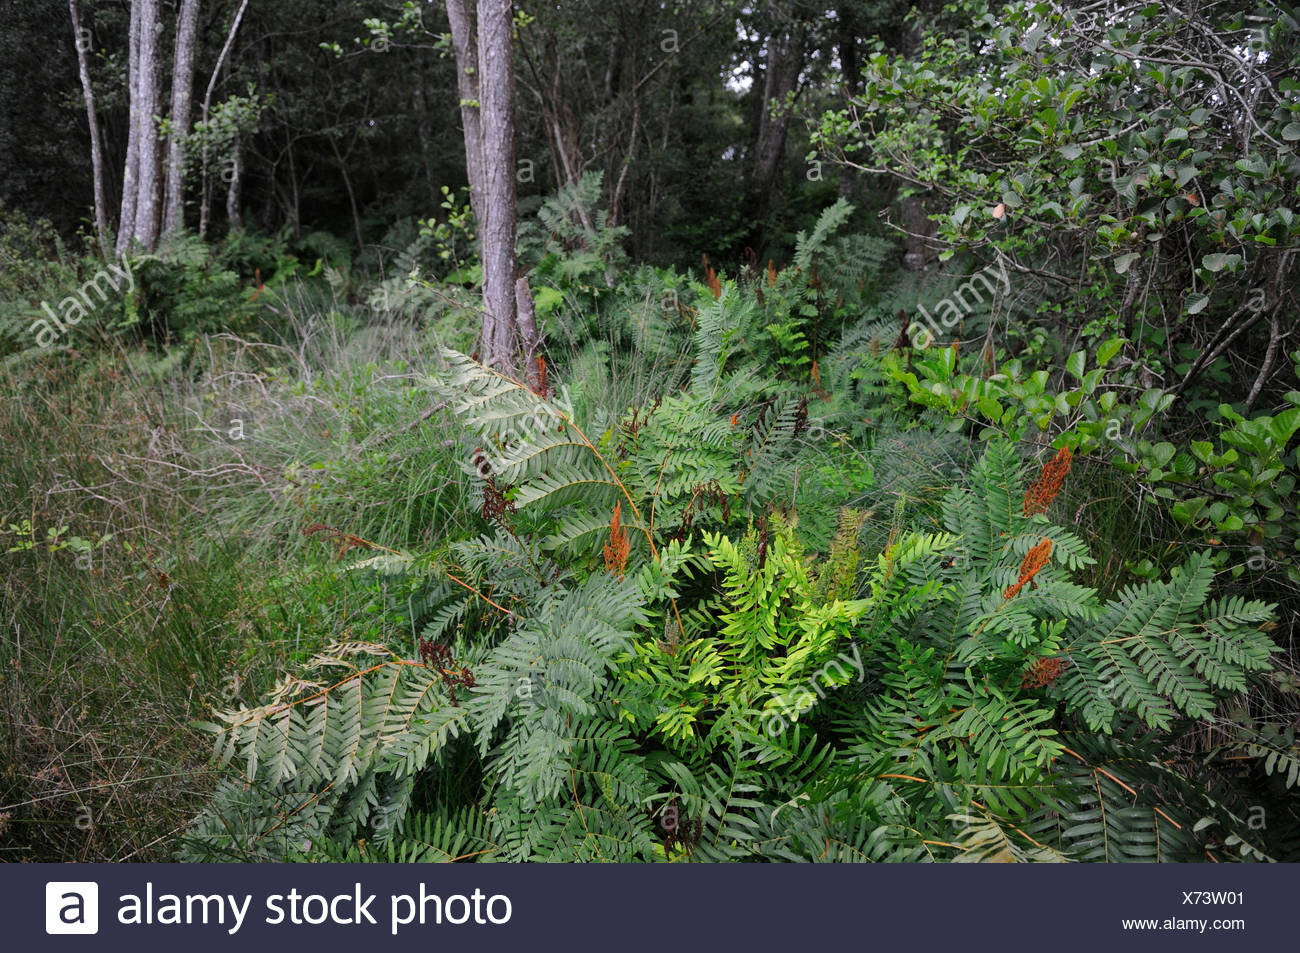 Royal ferns in the undergrowth - Aquitaine France Stock Photo